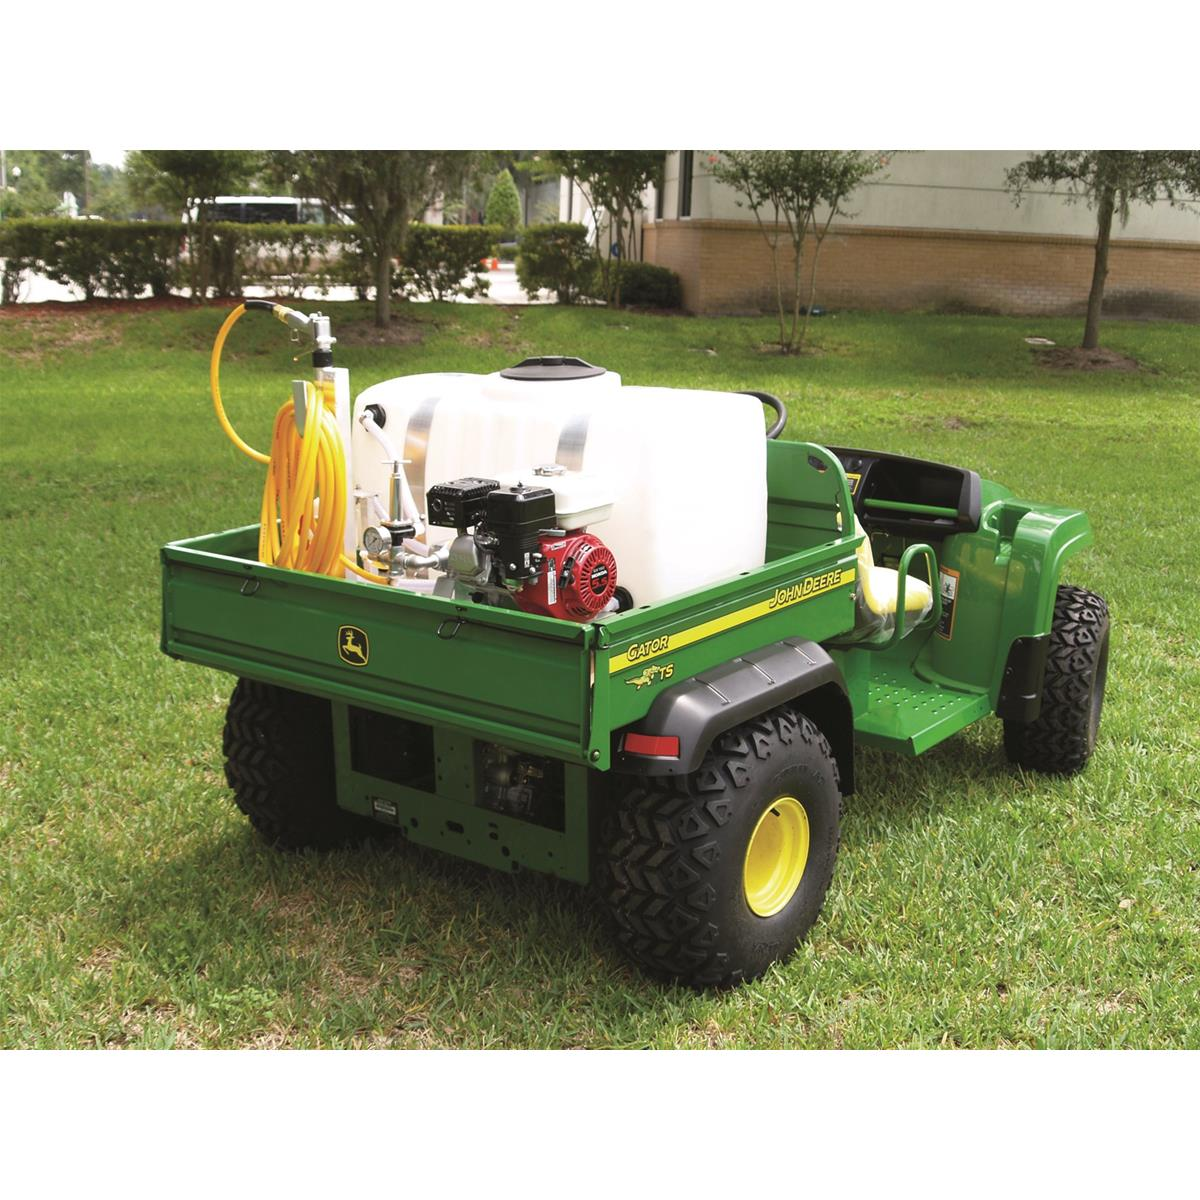 Kings UTV Skid Sprayer, 50 gal.